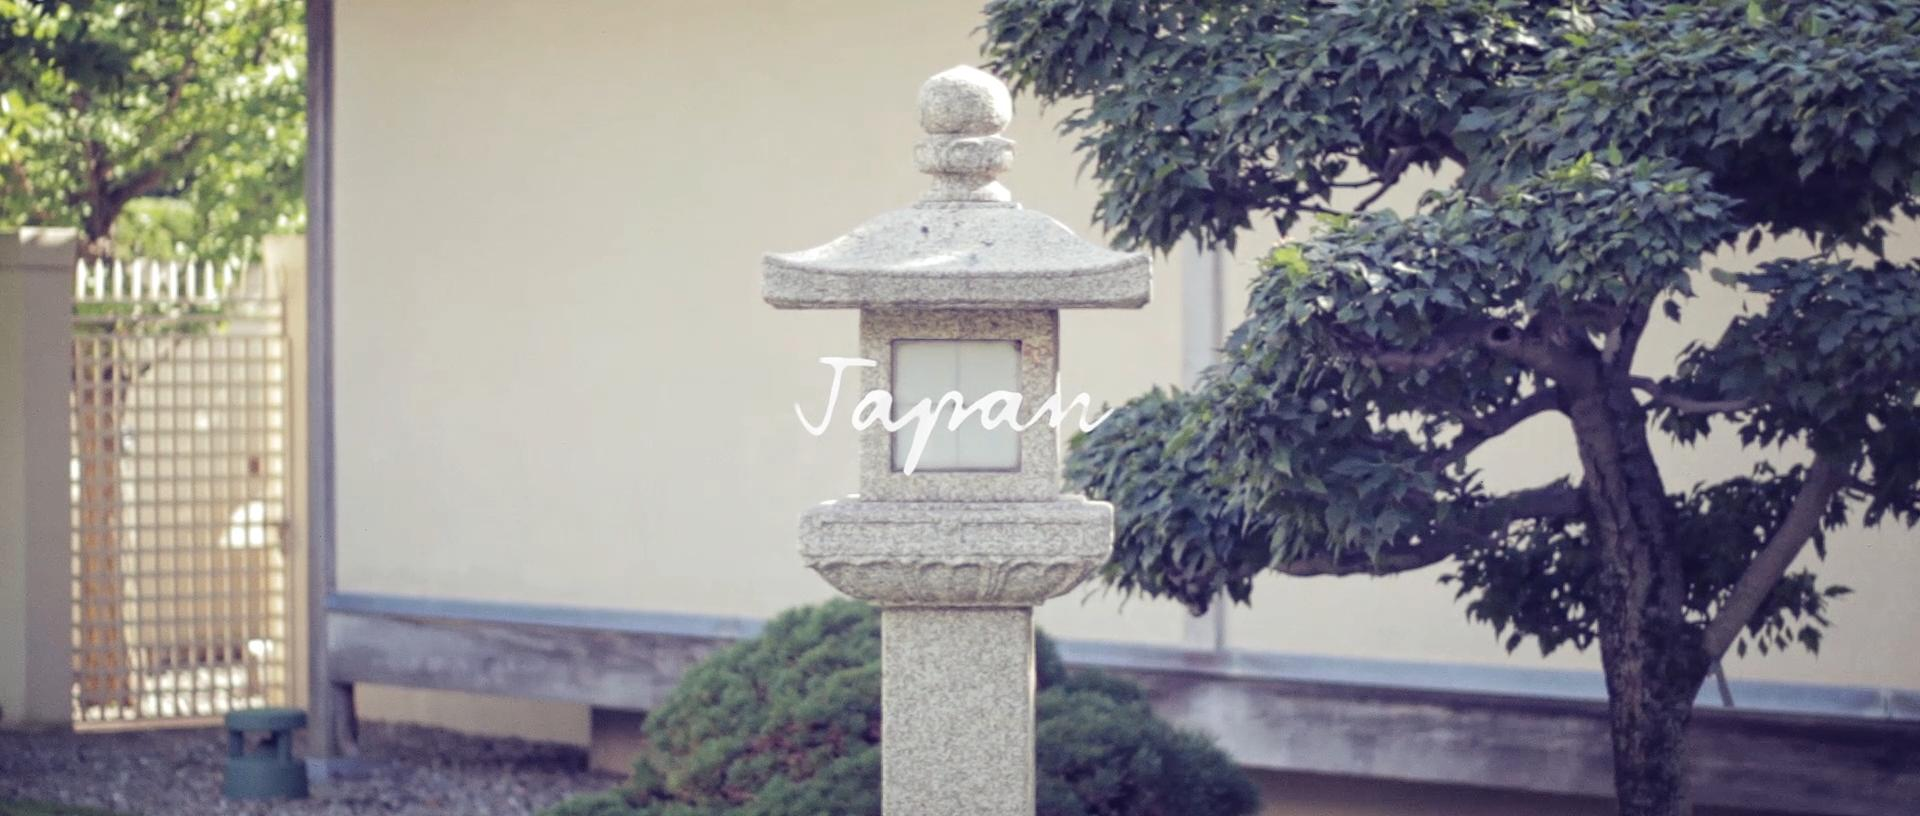 5-Just_a_moment_Japan